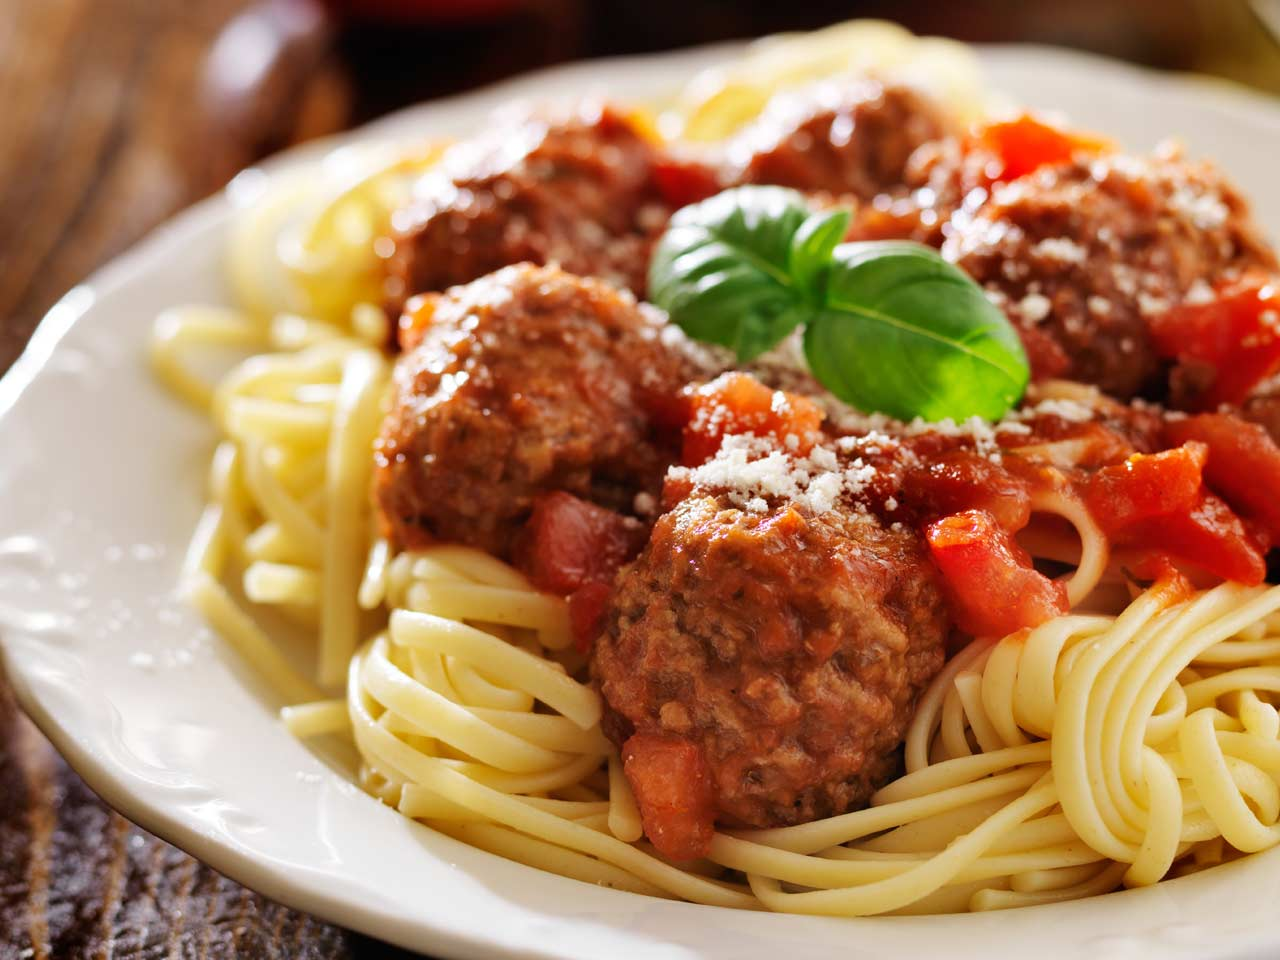 Italian spiced meatballs with tomato sauce recipe - Saga